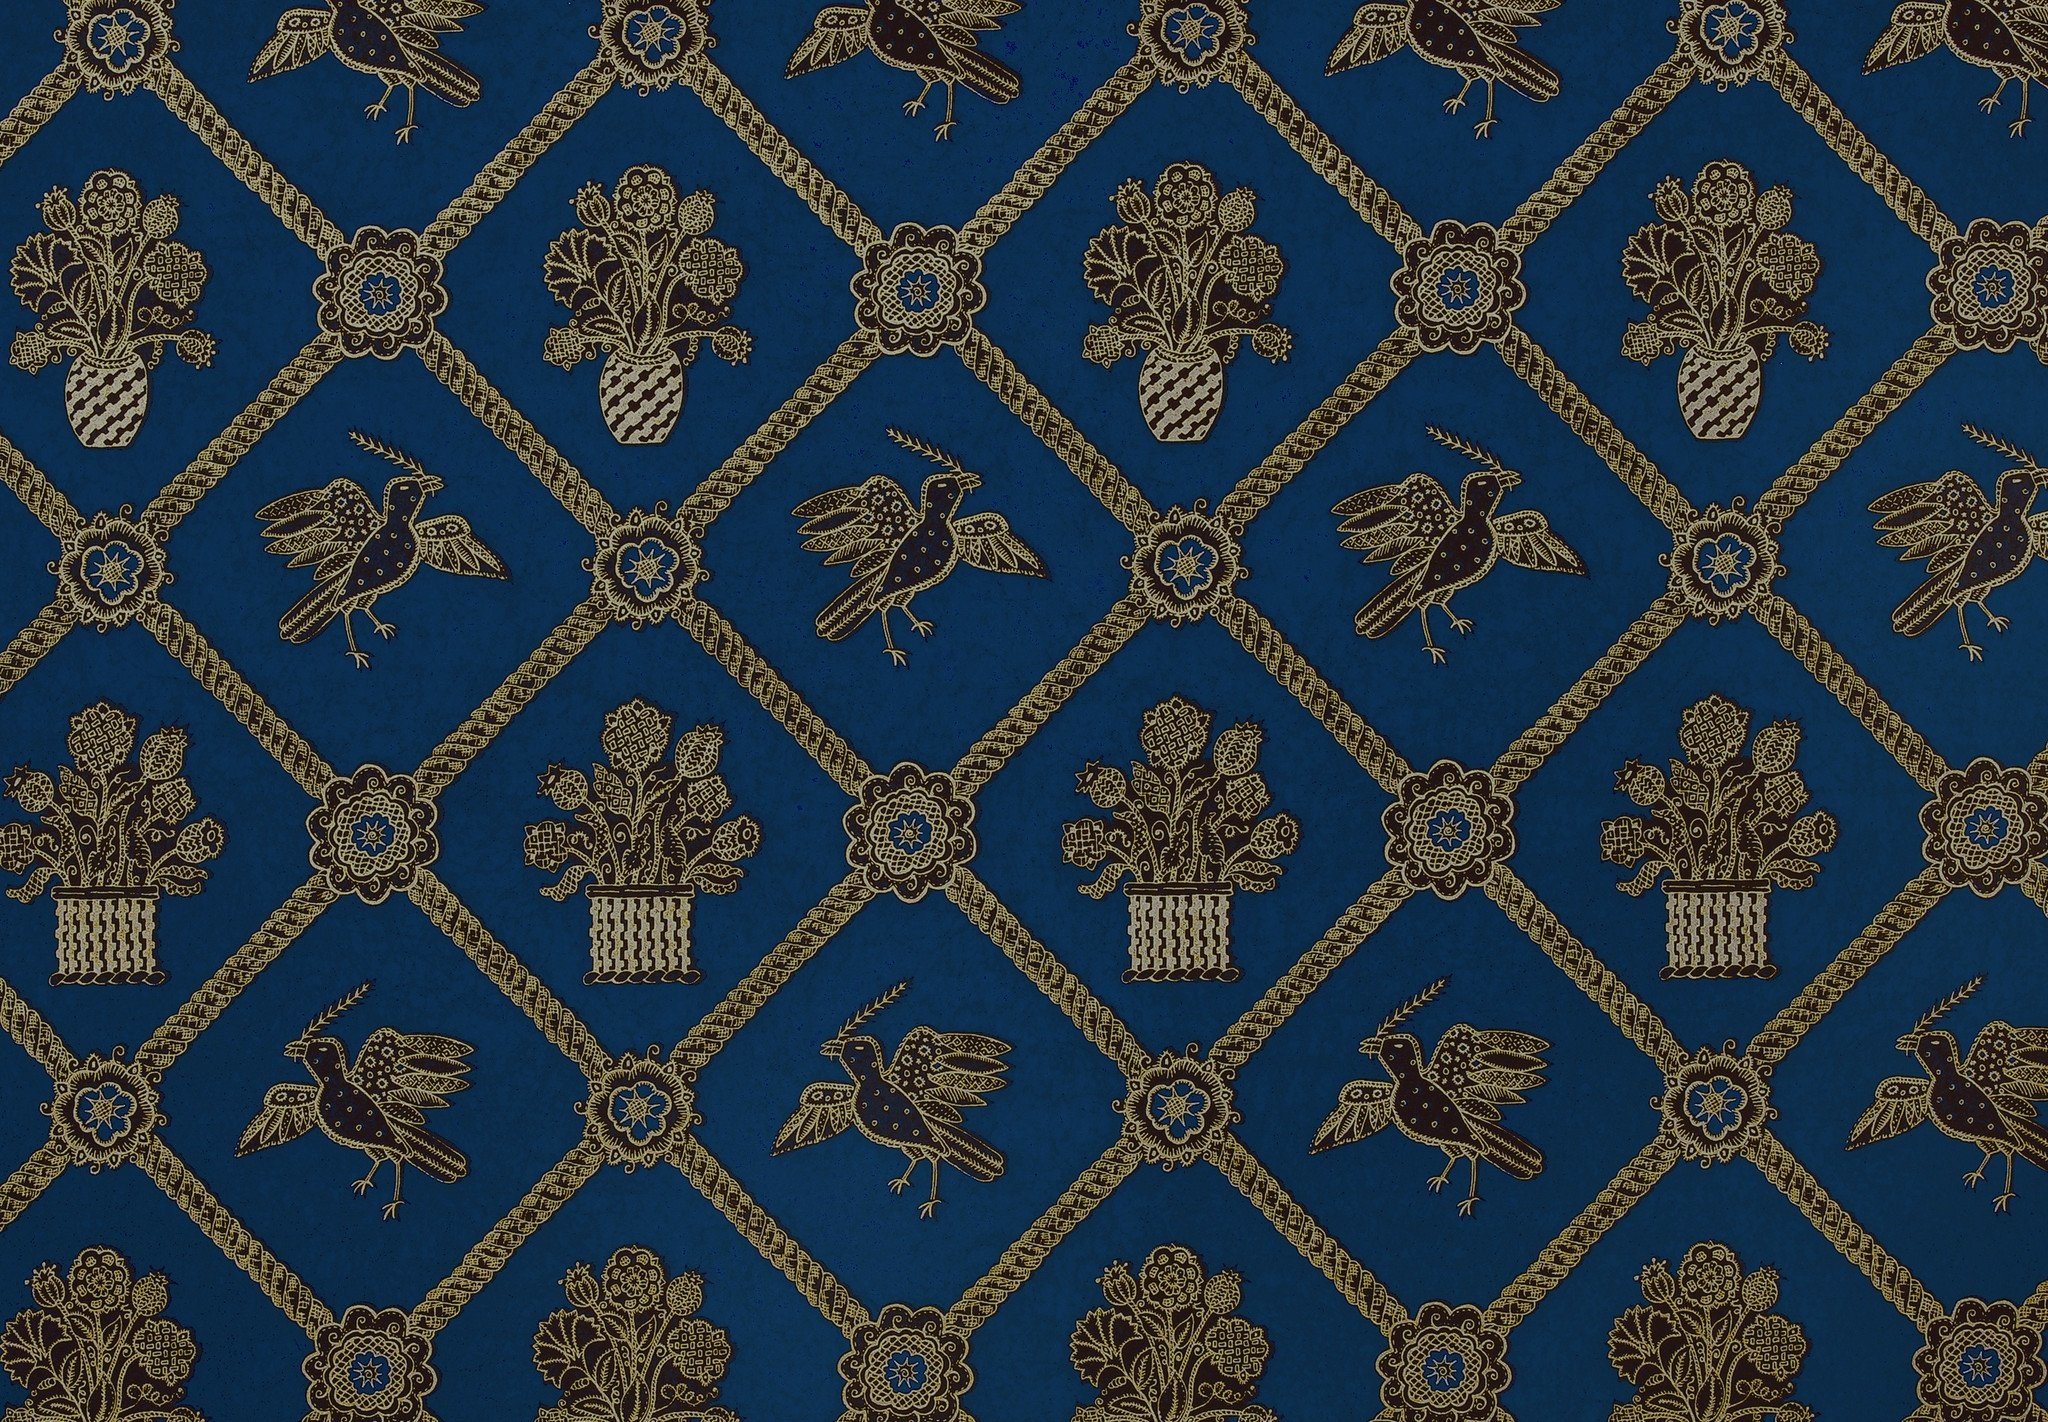 Royal Blue And Gold Wallpapers by Peter Day #10